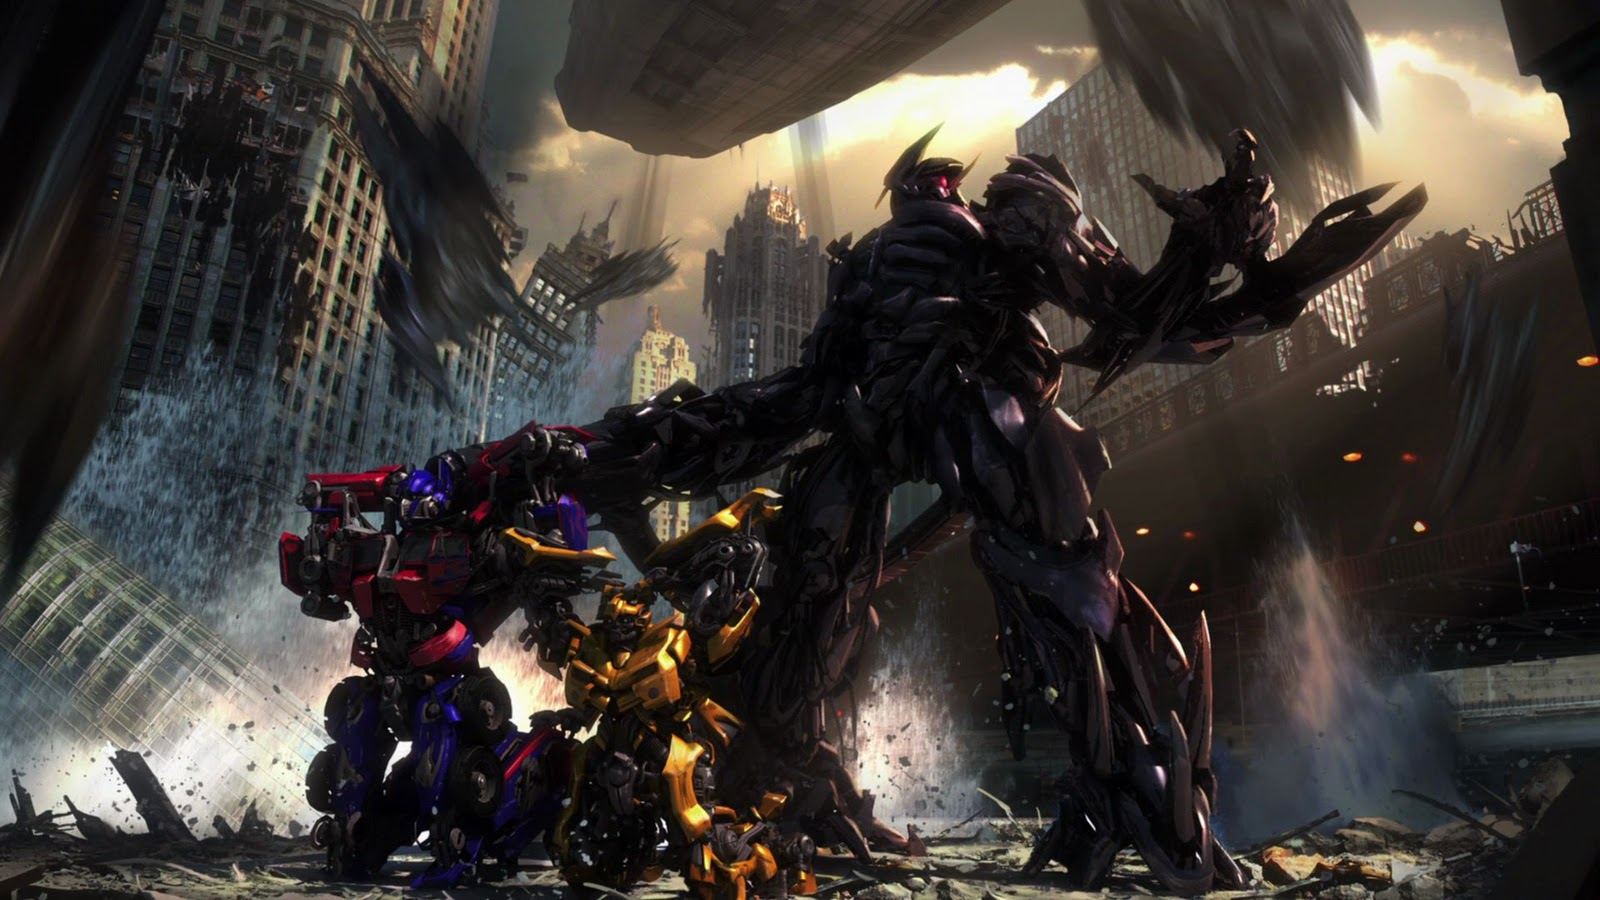 shockwave in transformers wallpapers - Transformers Dark of the Moon Clip Shockwave Driller